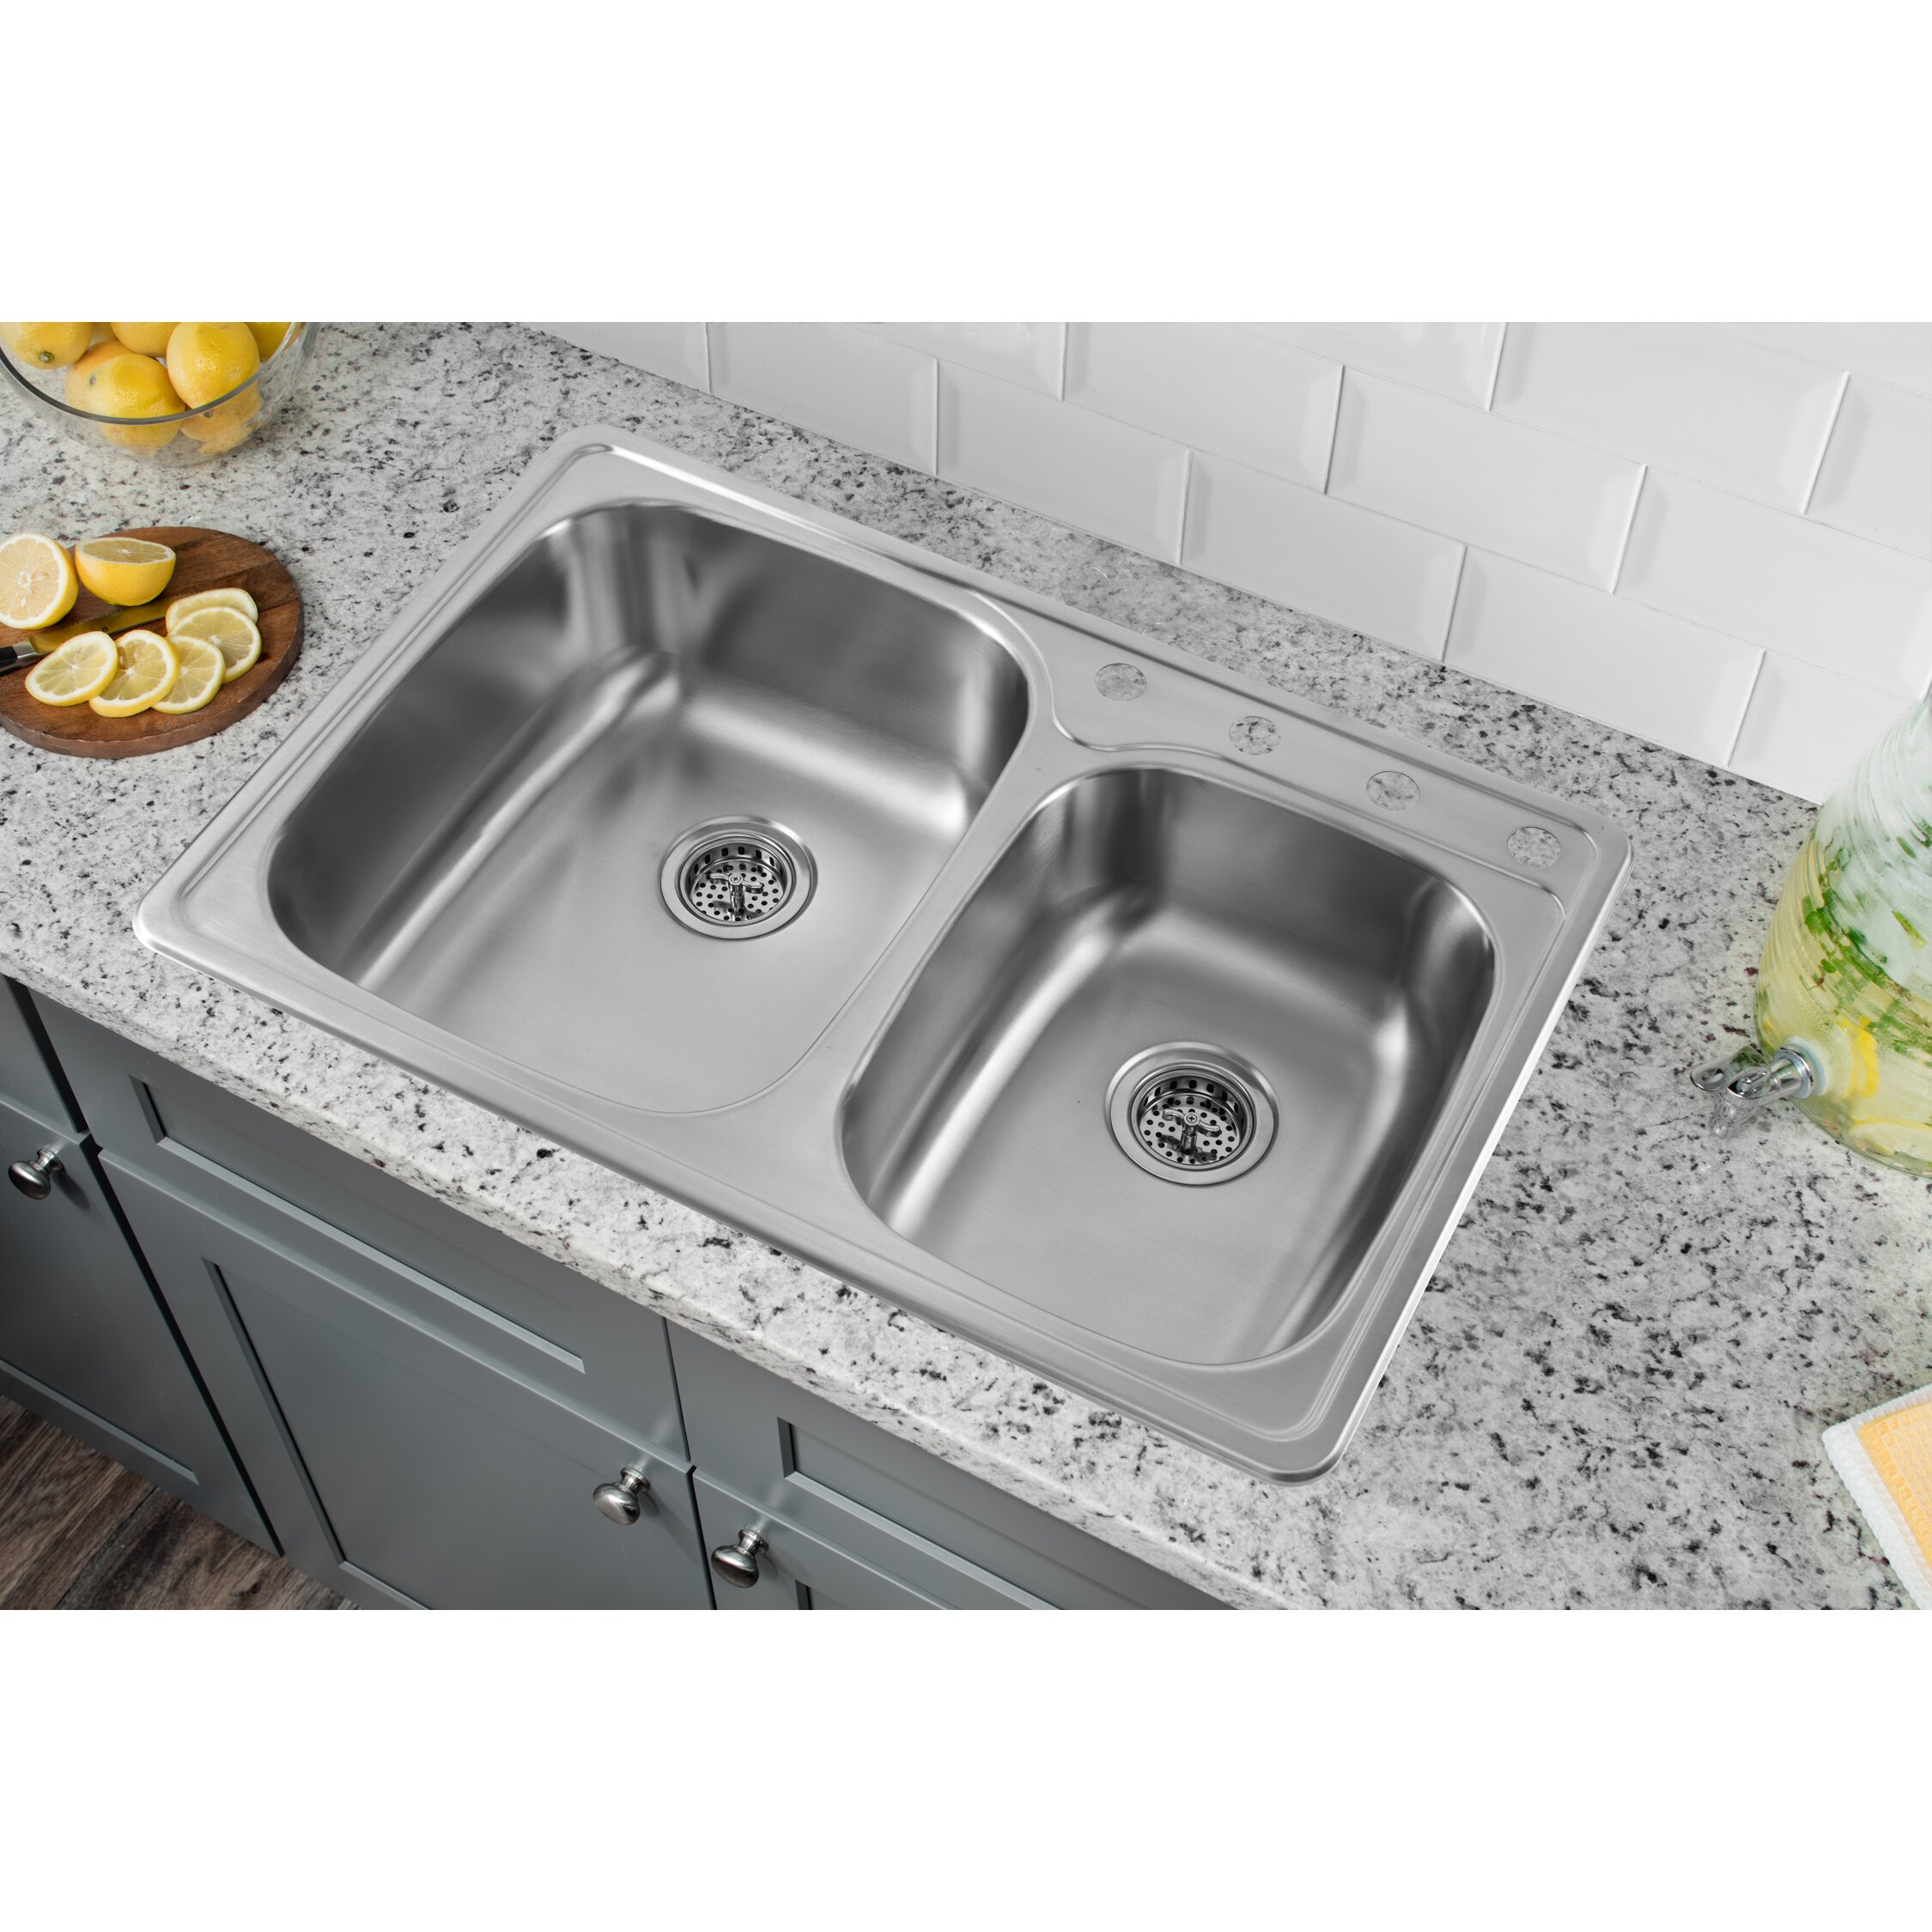 Soleil 33 quot  x 22 quot  Stainless Steel Drop In Double Bowl Kitchen Sink. Soleil 33  x 22  Stainless Steel Drop In Double Bowl Kitchen Sink